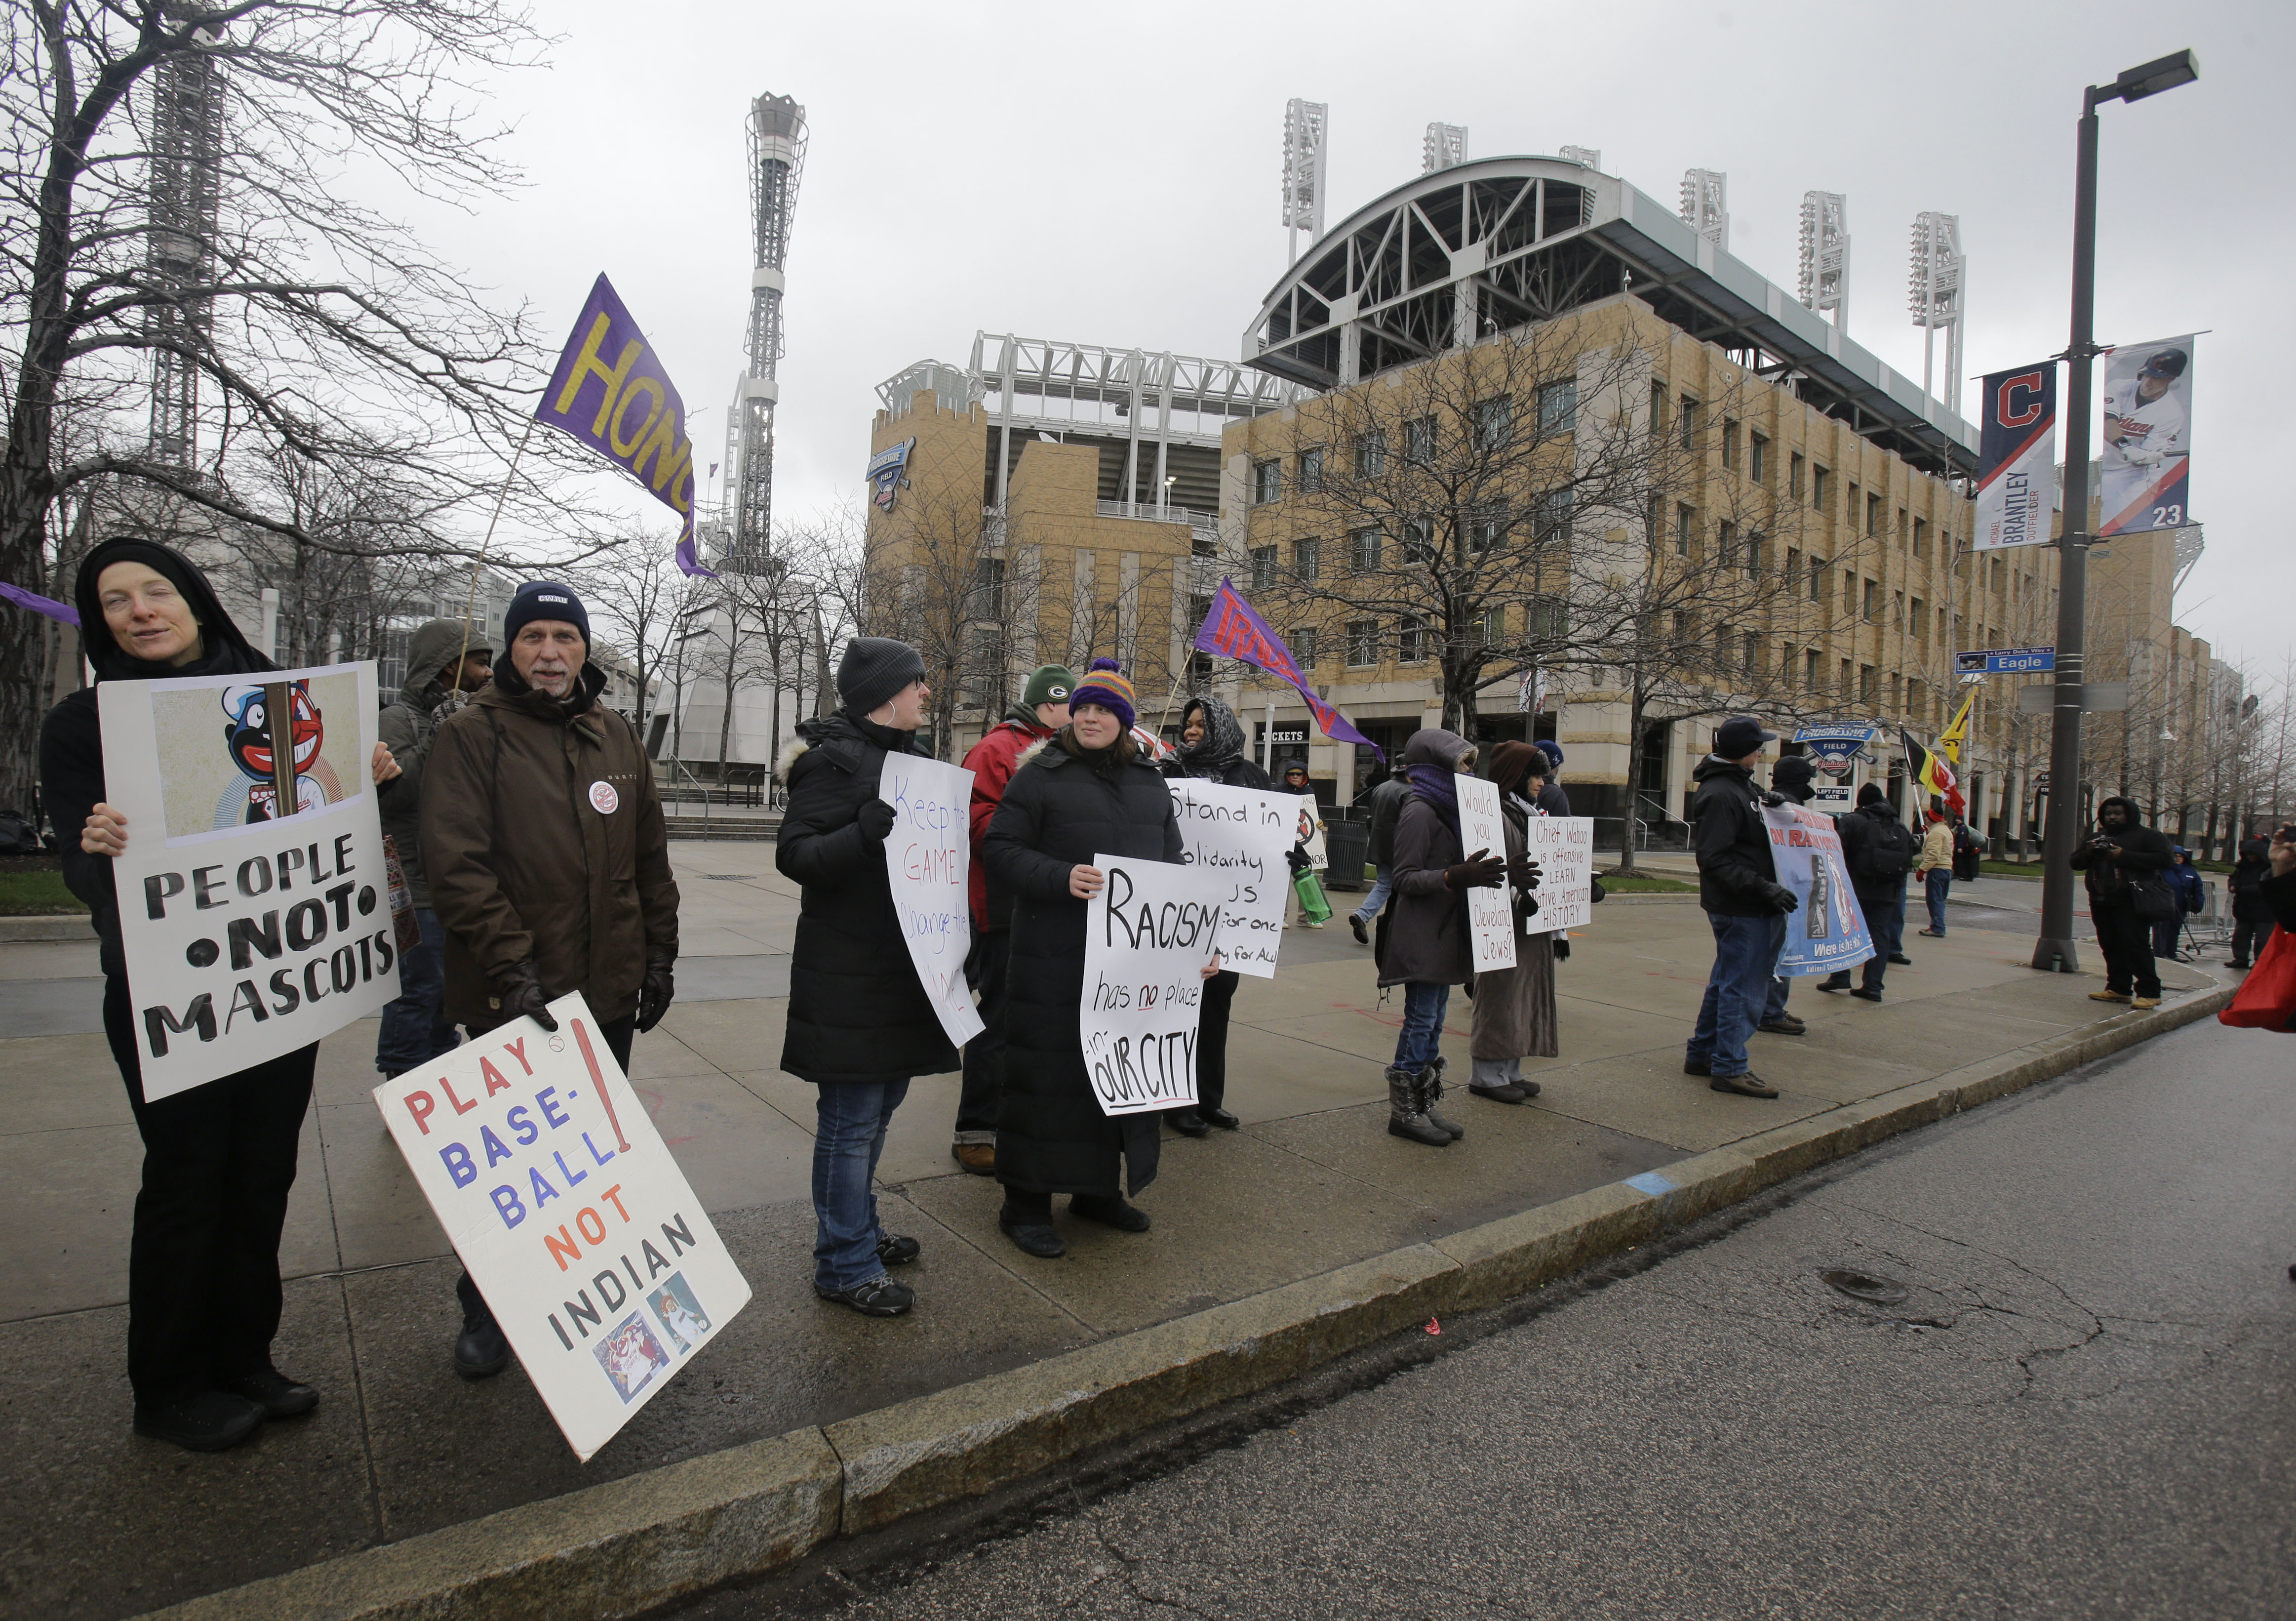 Protesters gather outside Progressive Field to protest the Cleveland Indians mascot before a baseball postponed game between the Boston Red Sox and the Cleveland Indians, Monday, April 4, 2016, in Cleveland. (AP Photo/Tony Dejak)